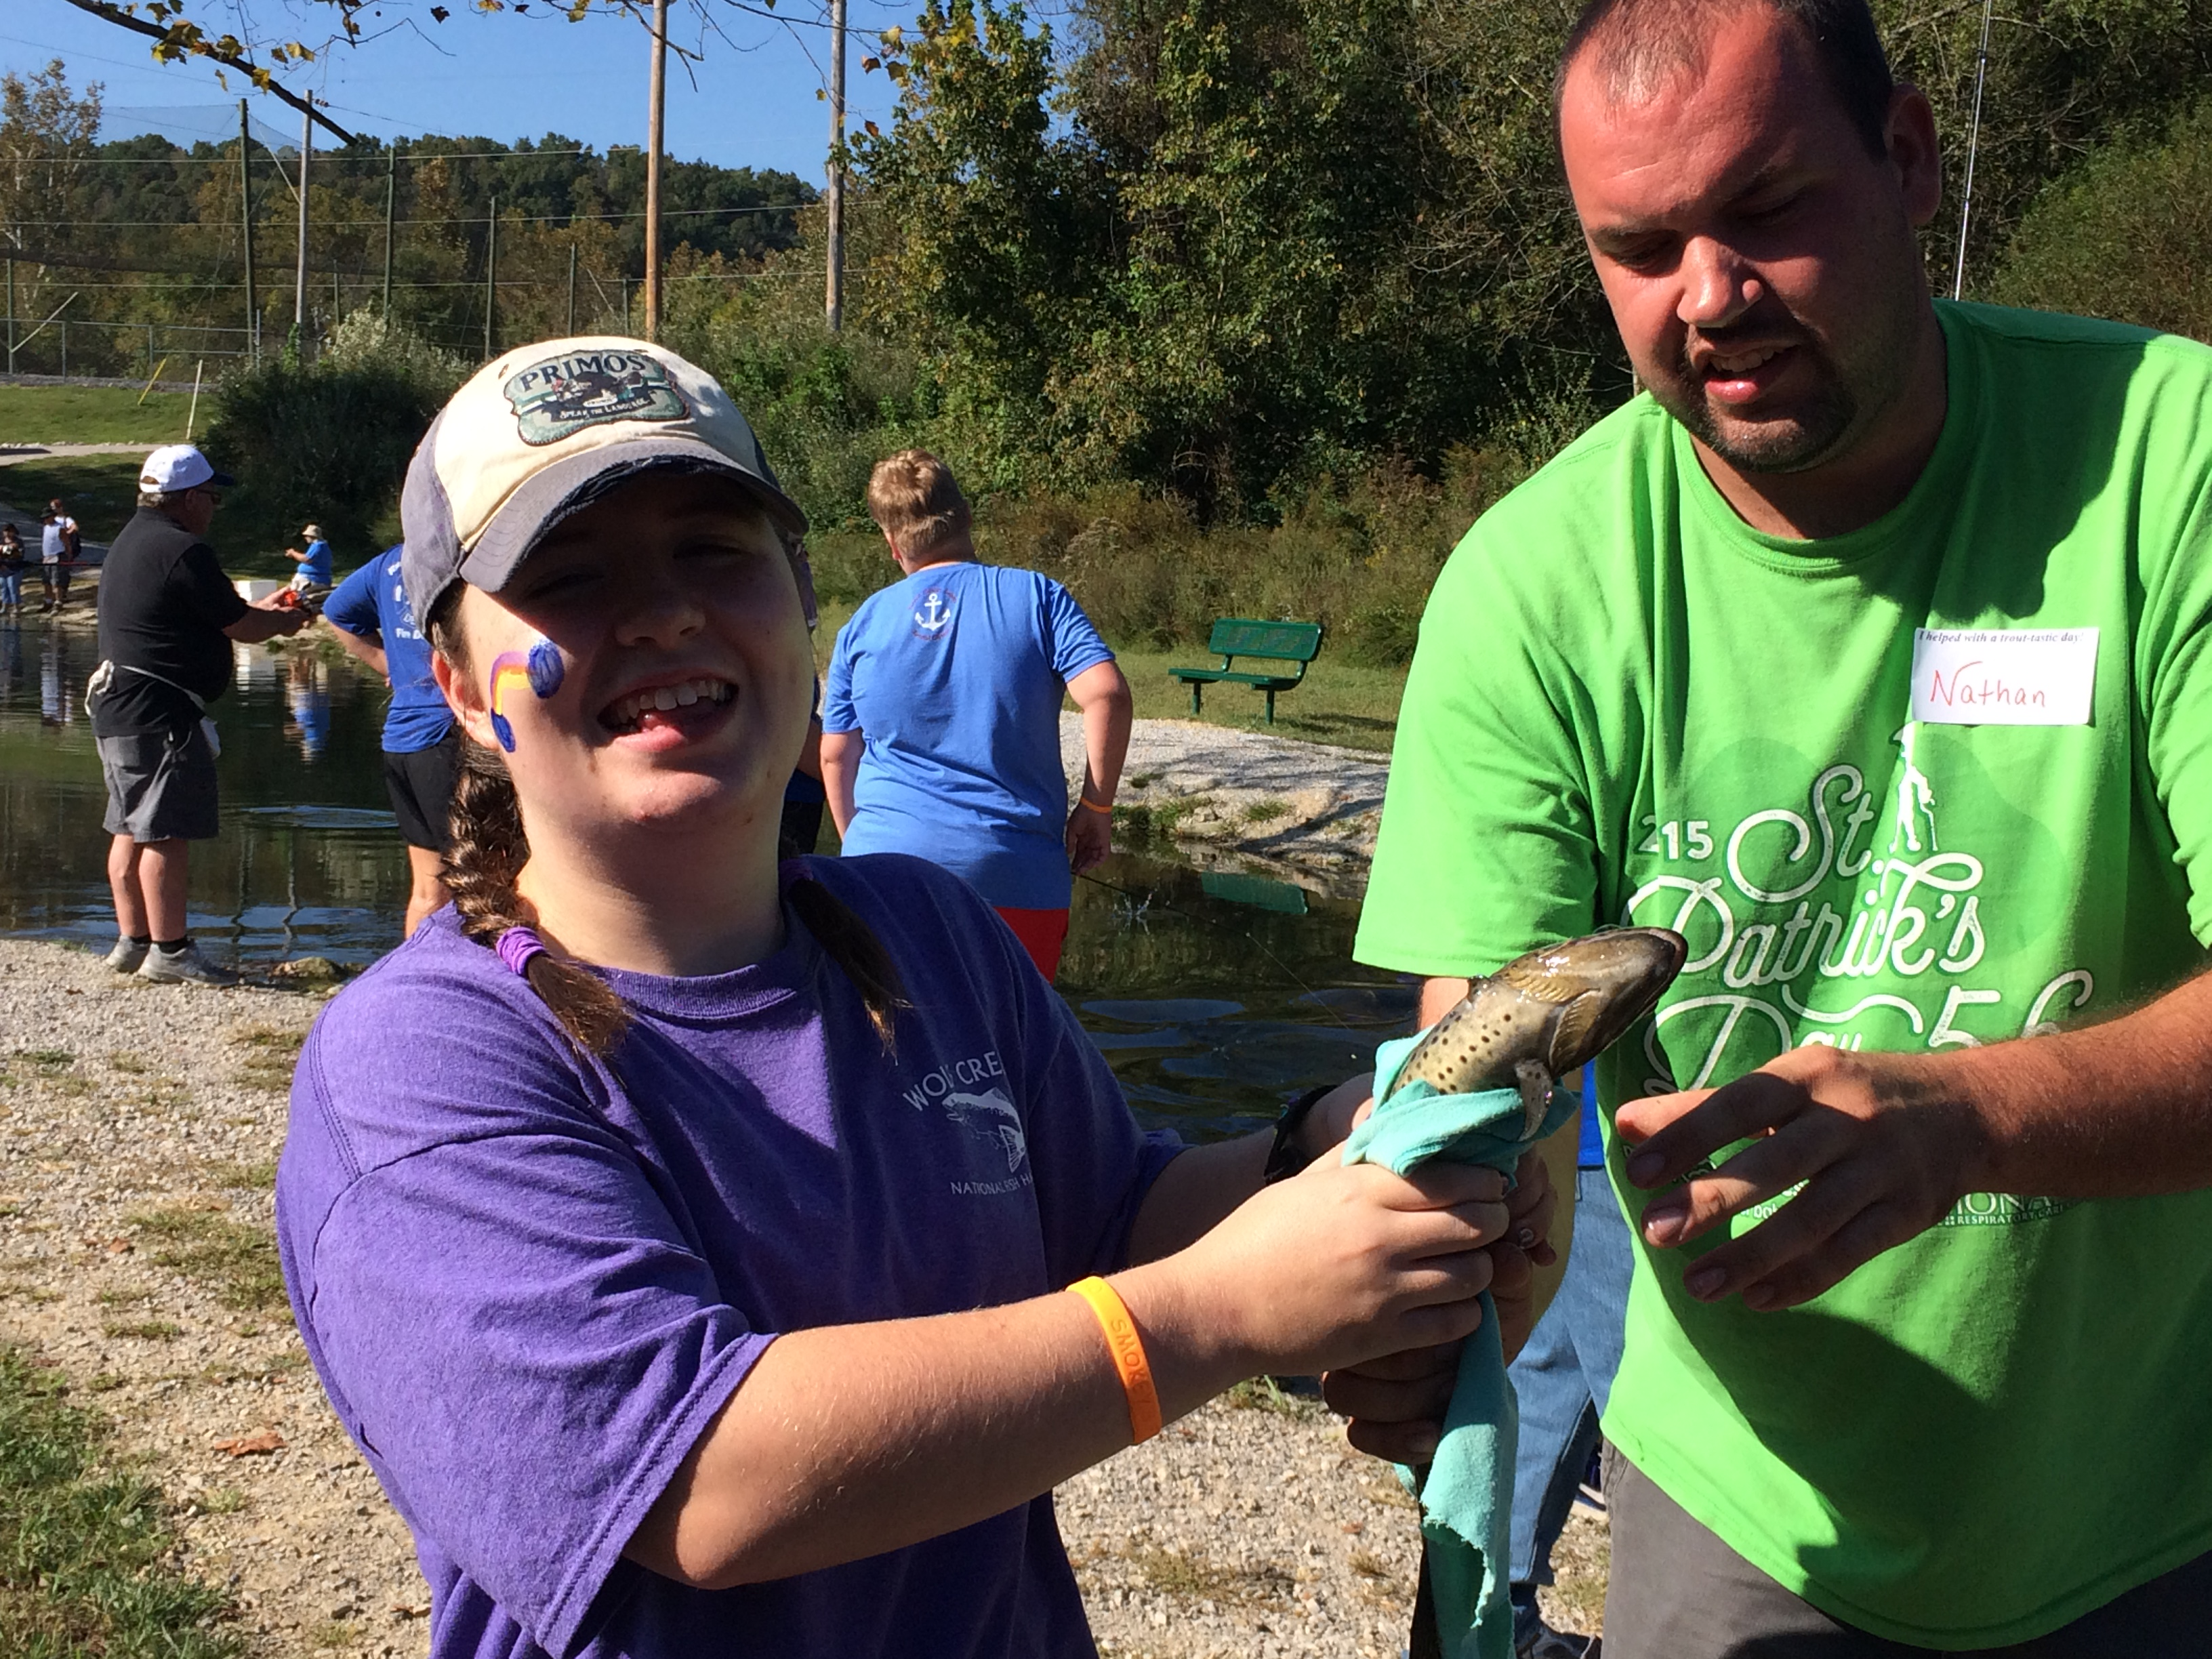 The 10th Annual Reaching for Rainbows Fishing Derby for students in Clinton and Russell Counties was held on Thursday, September 28th at Wolf Creek National Fish Hatchery.